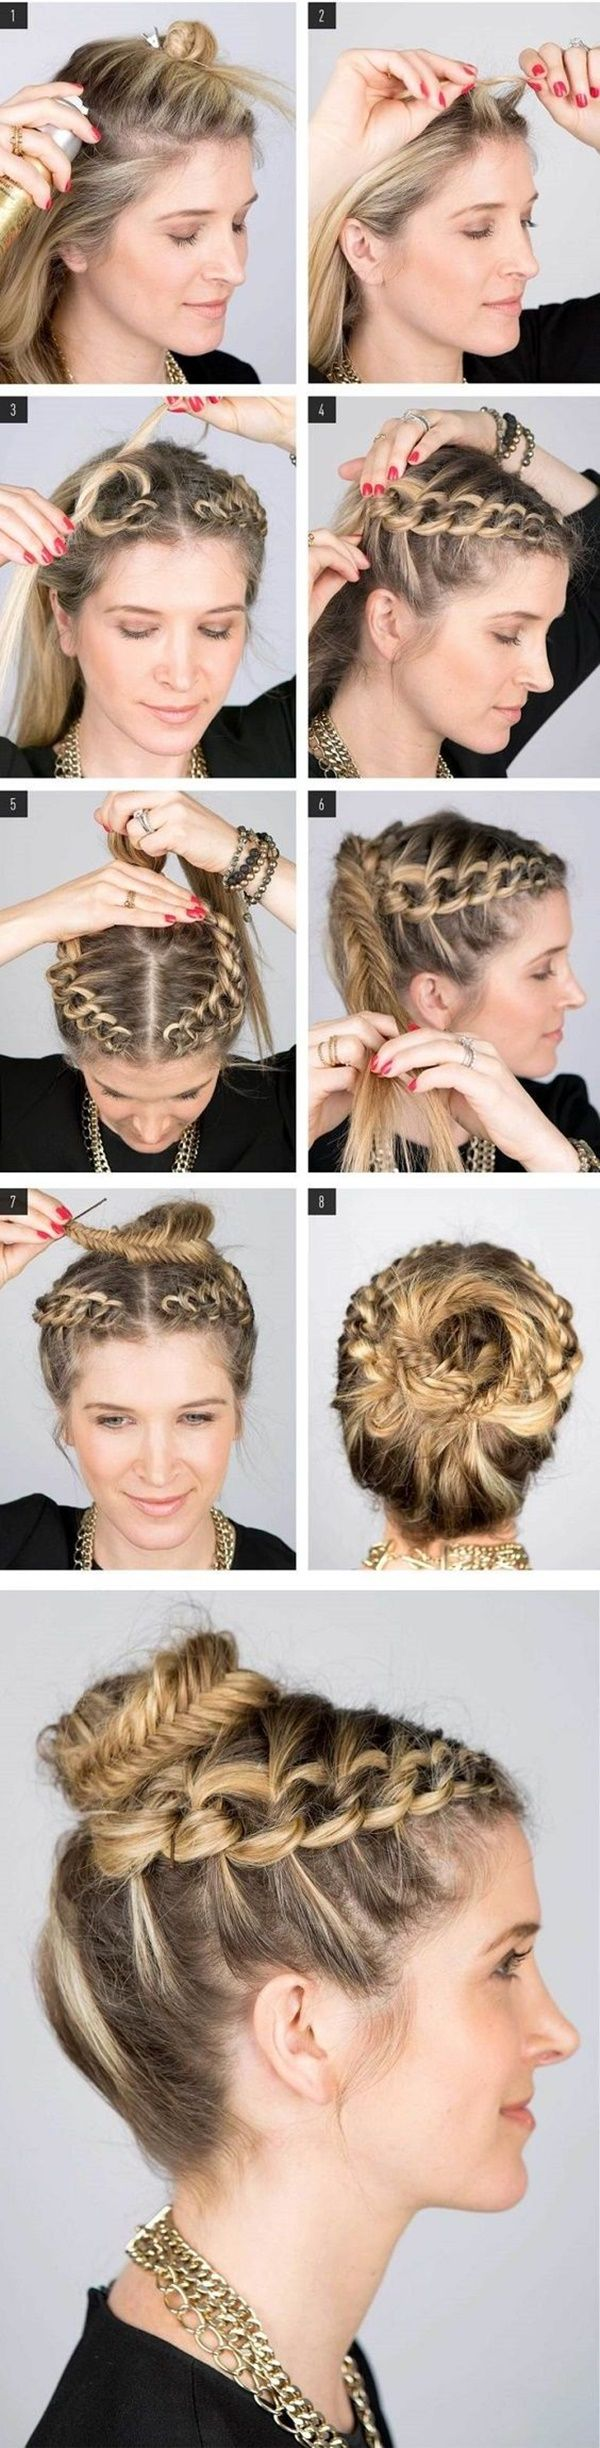 Hairstyles Step By Step step by step different style braids tutorials Top 25 Best Step By Step Hairstyles Ideas On Pinterest Simple Hair Updos Easy Hairstyle And Simple Hairstyles